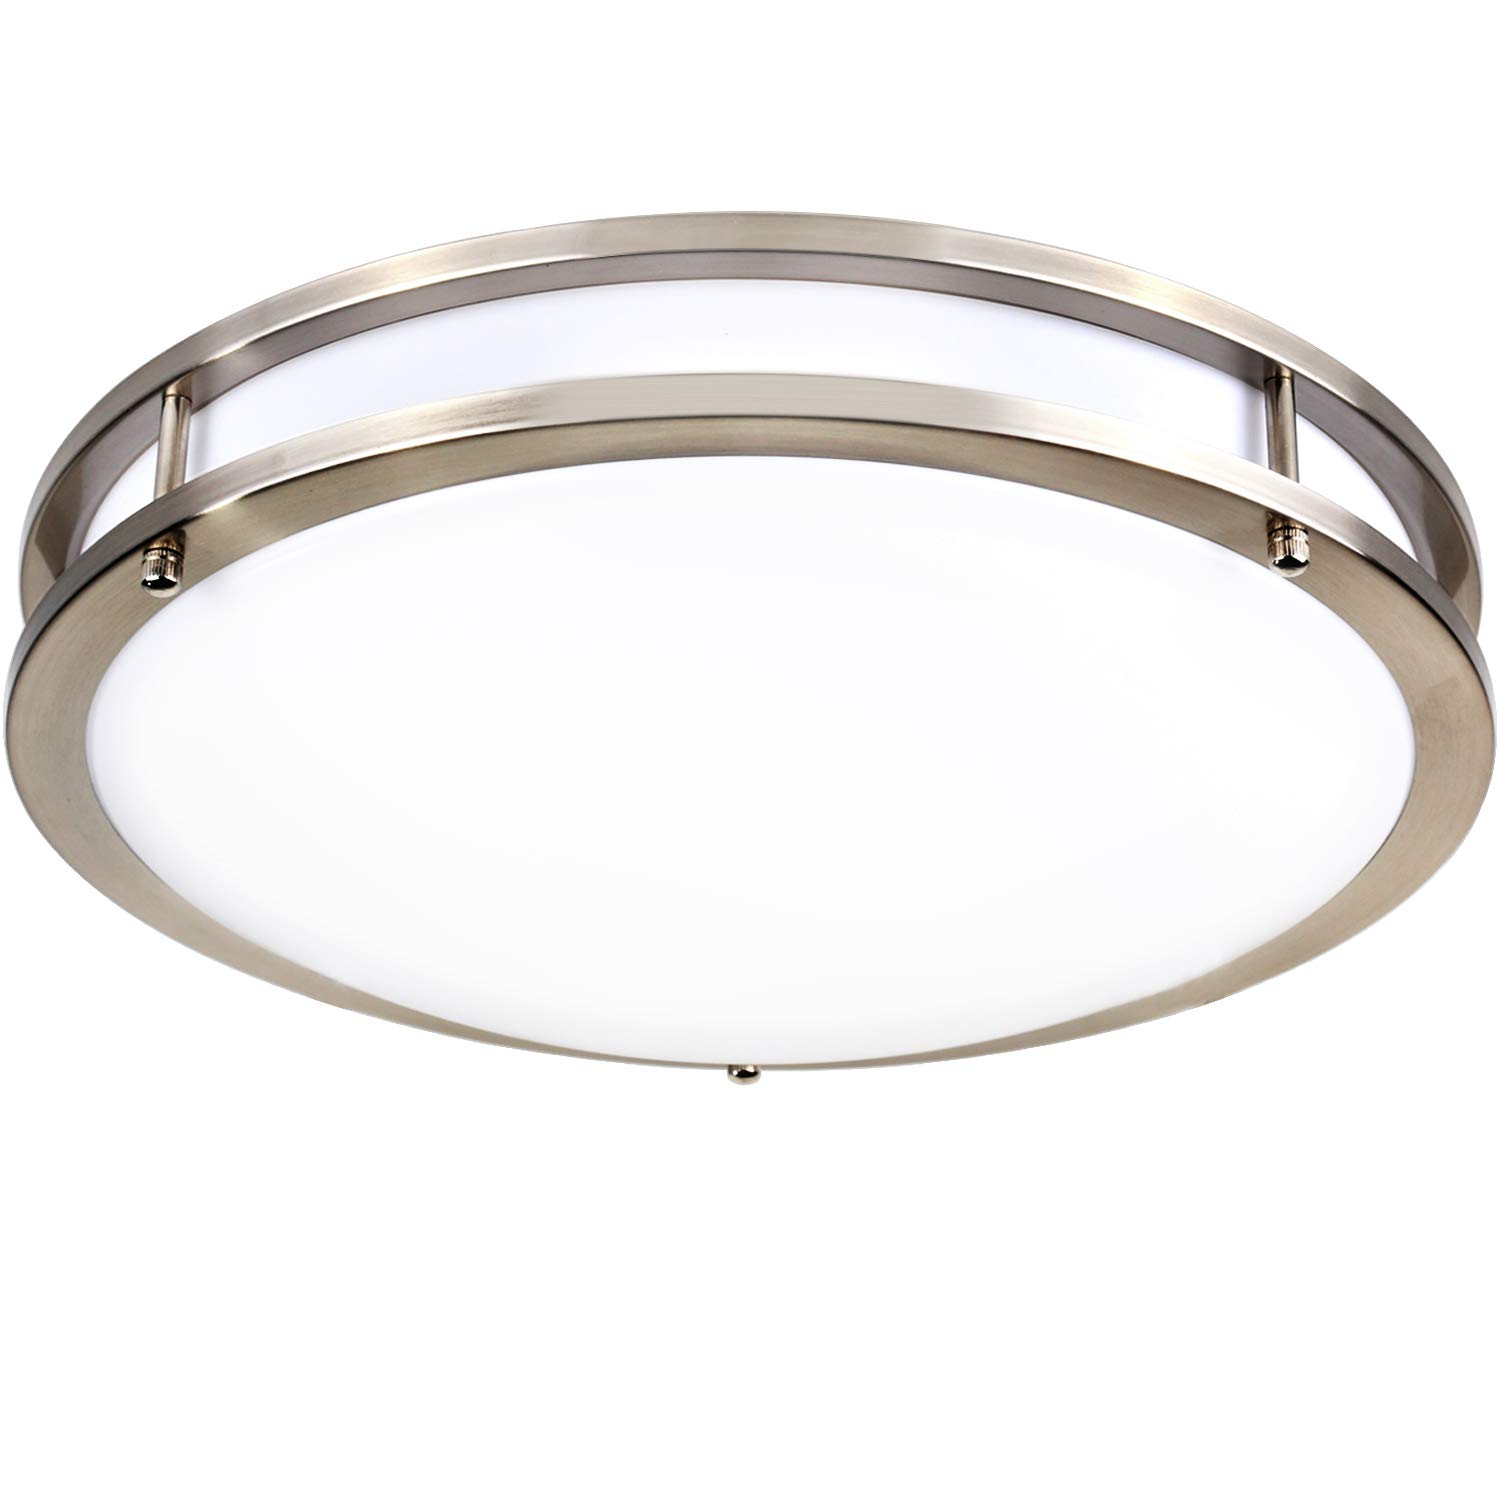 Hykolity 14 Inch LED Ceiling Light, 22W [160W Equivalent] 1650lm 4000K BN Finish Dimmable Saturn Flush Mount Ceiling Light, ETL Listed for Hallway, Bathroom,Kitchen, Bedroom, Restroom, Walk in Closet